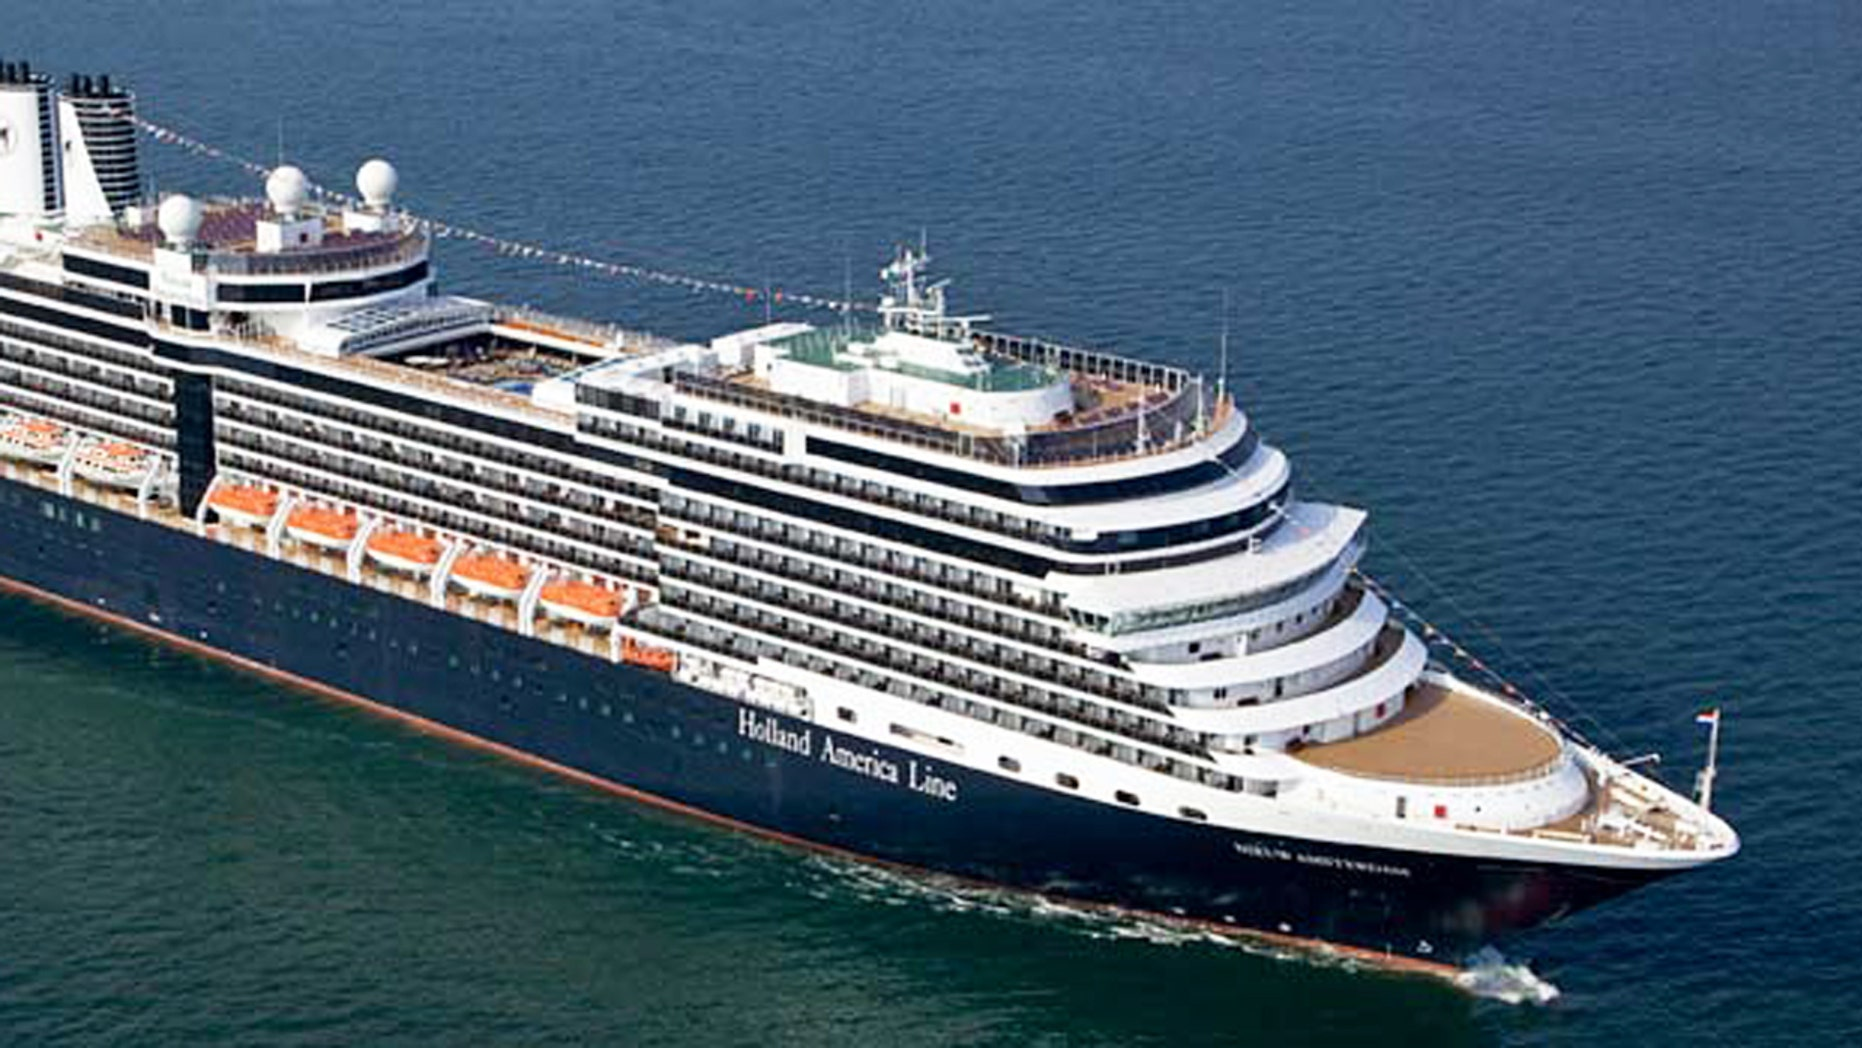 The MS Nieuw Amsterdam is a Signature class cruise ship with capacity for over 2,100 guests.